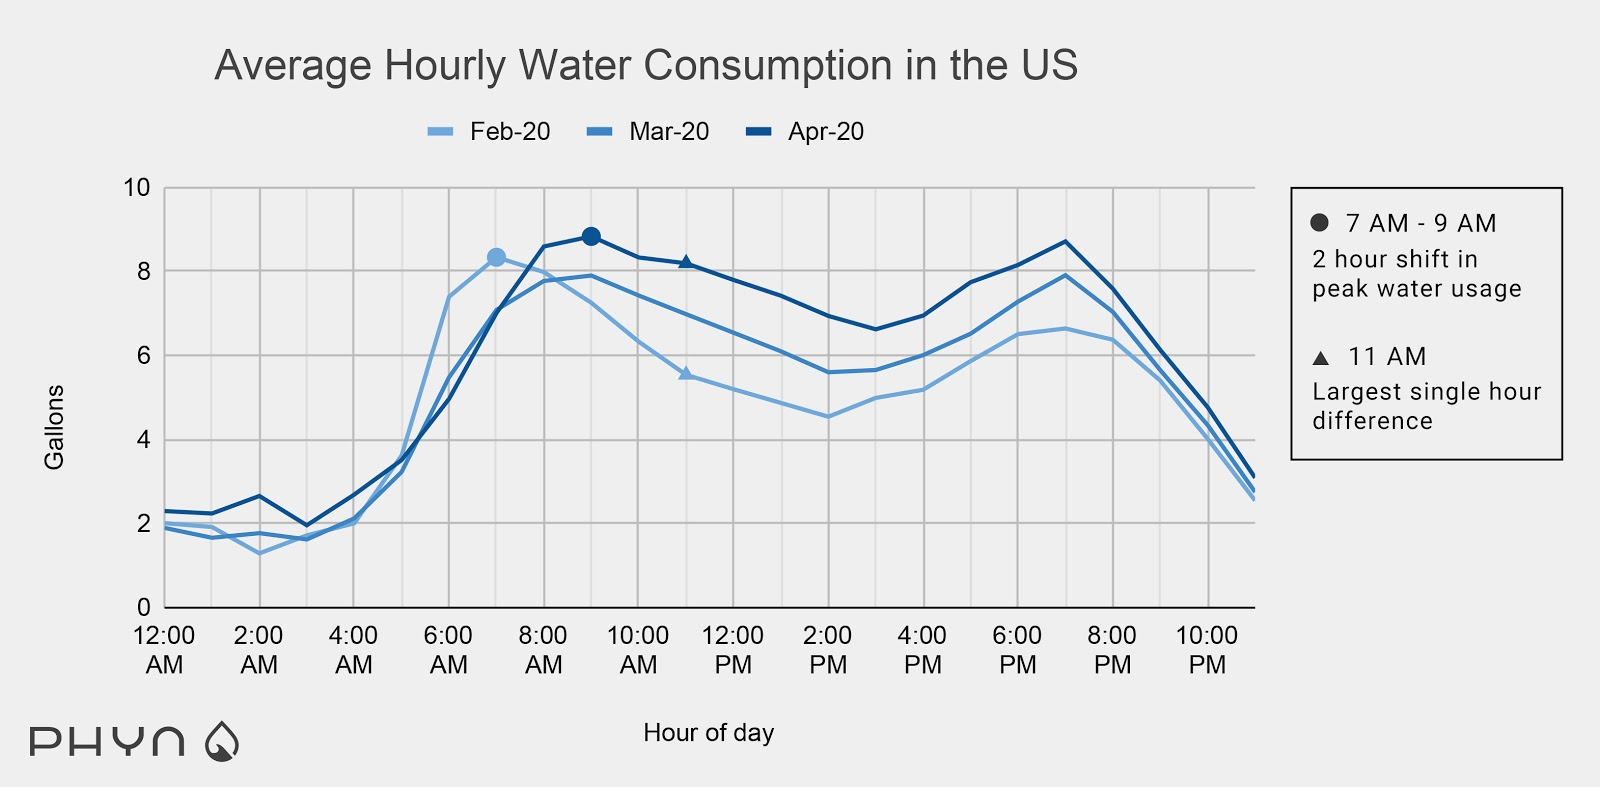 Average Hourly Water Consumption in the US